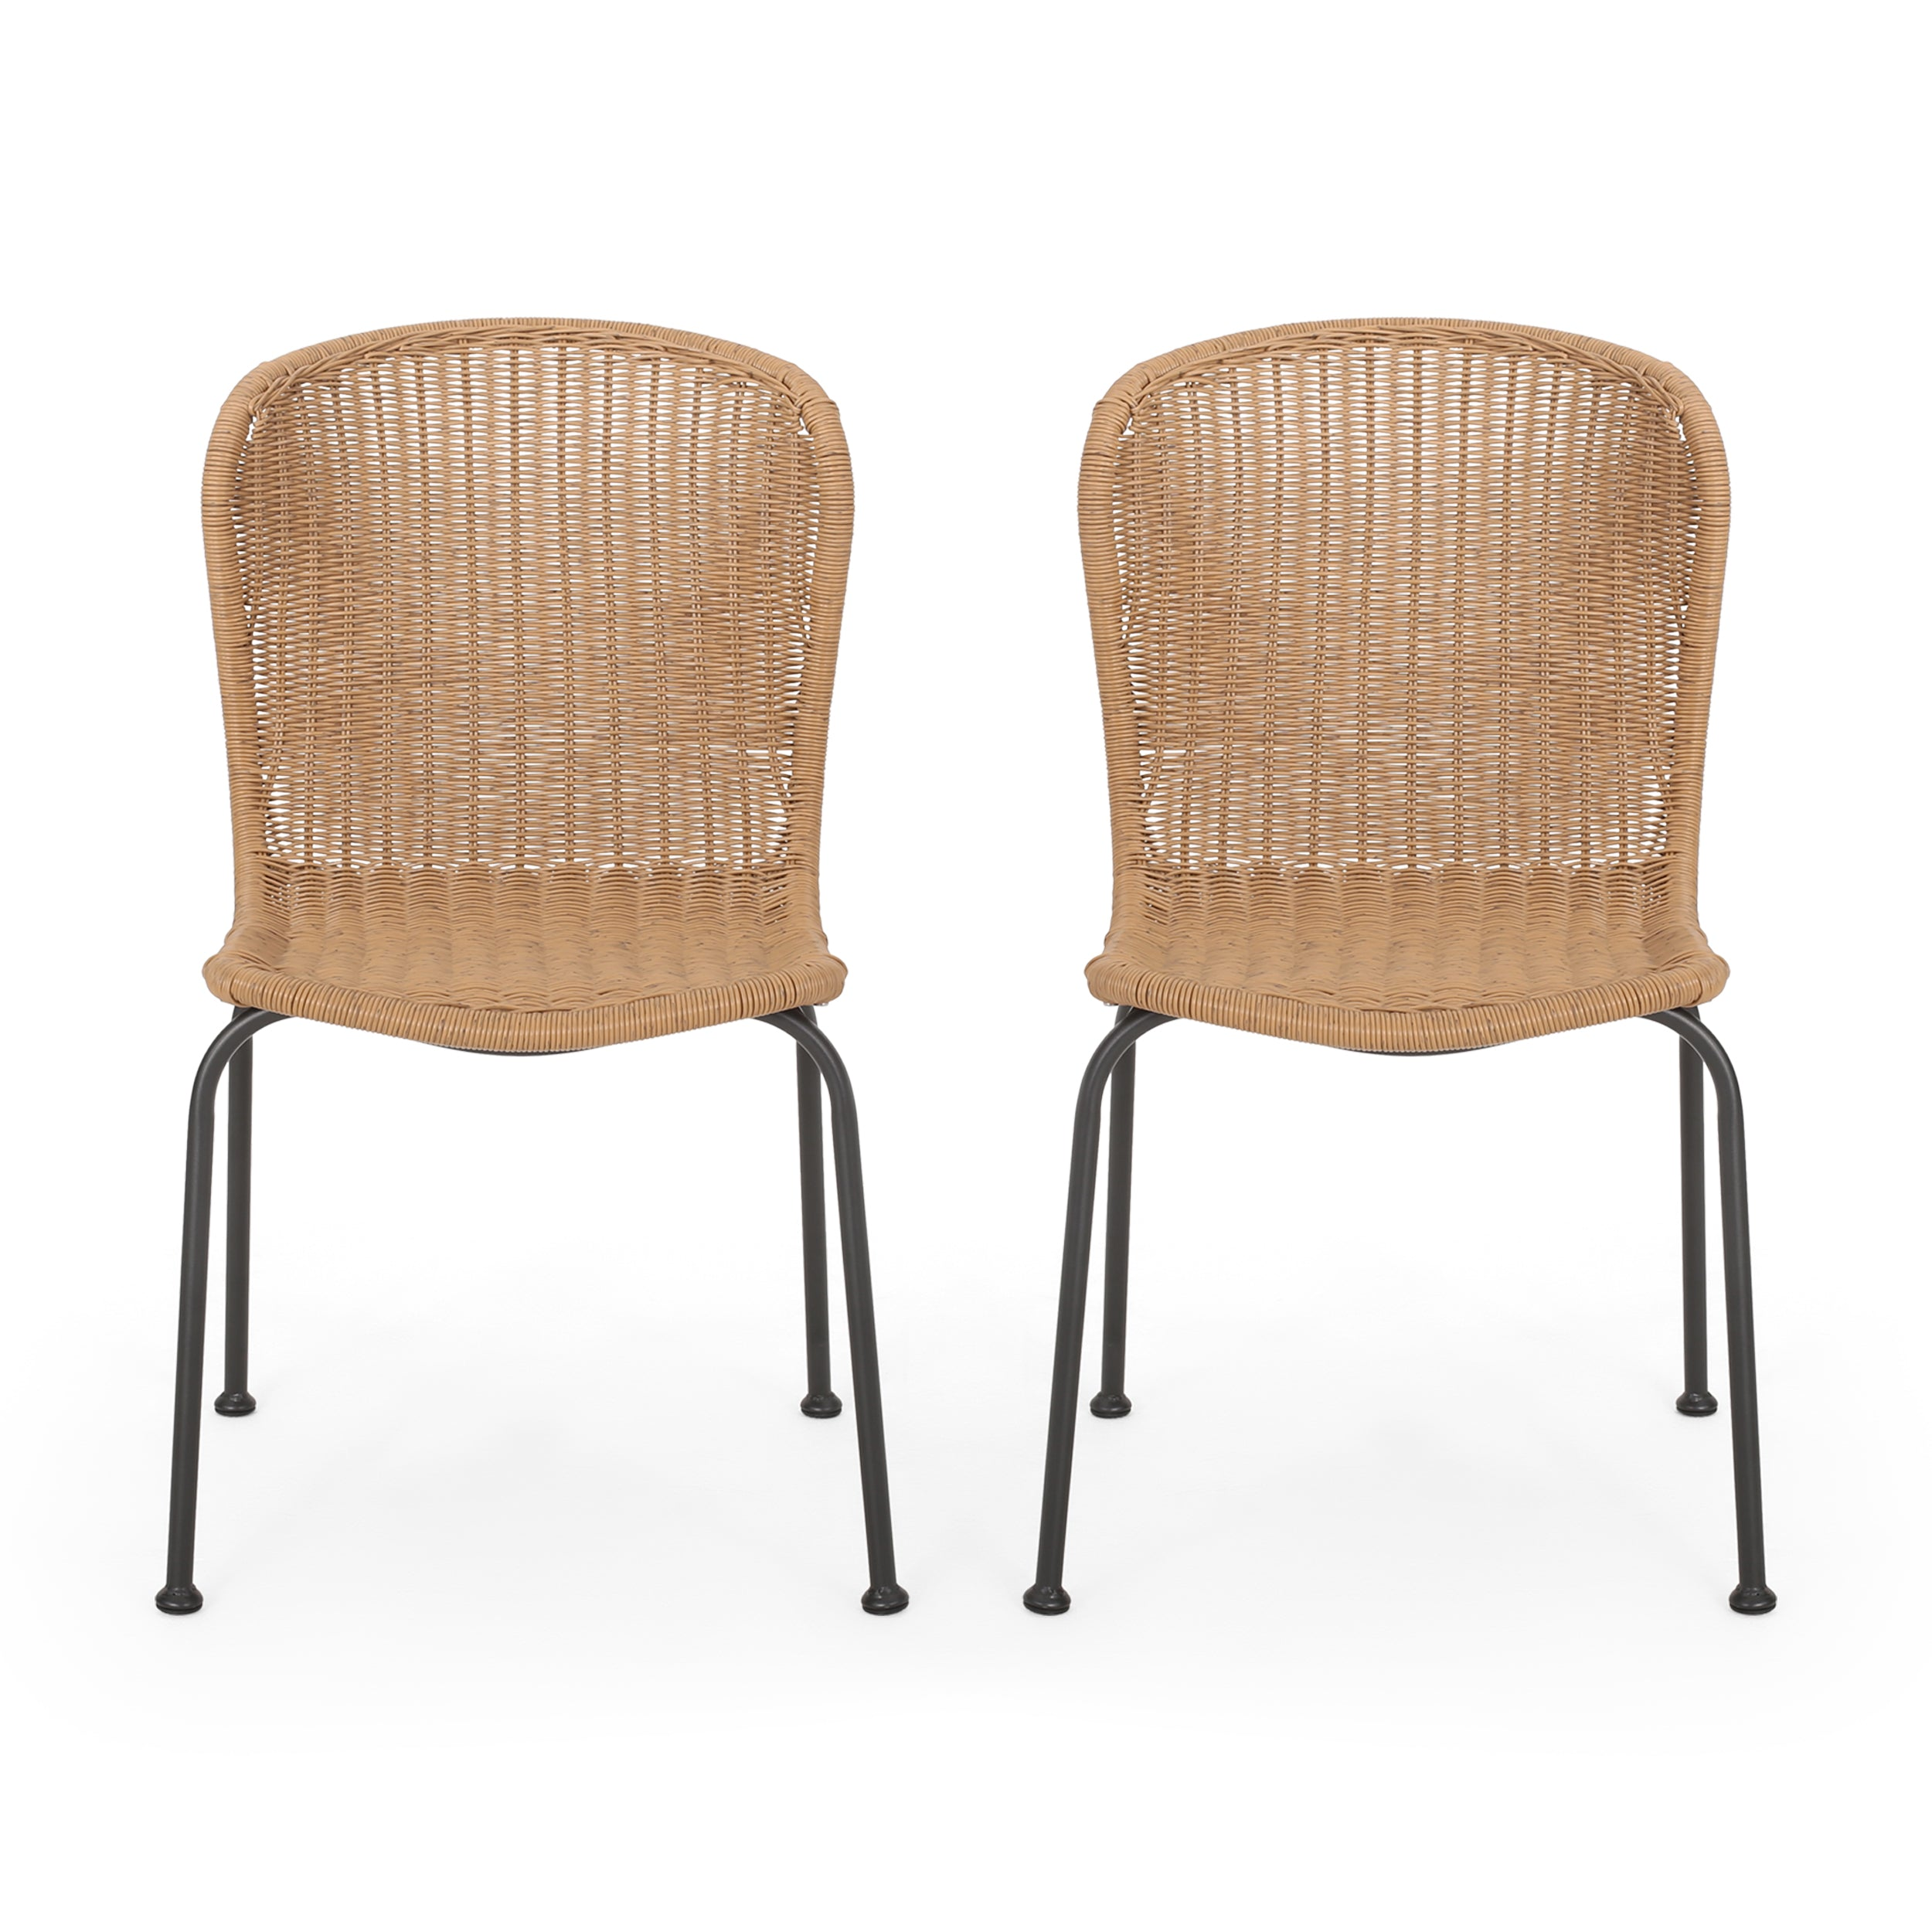 Akim Outdoor Boho Wicker Dining Chair Set of 2